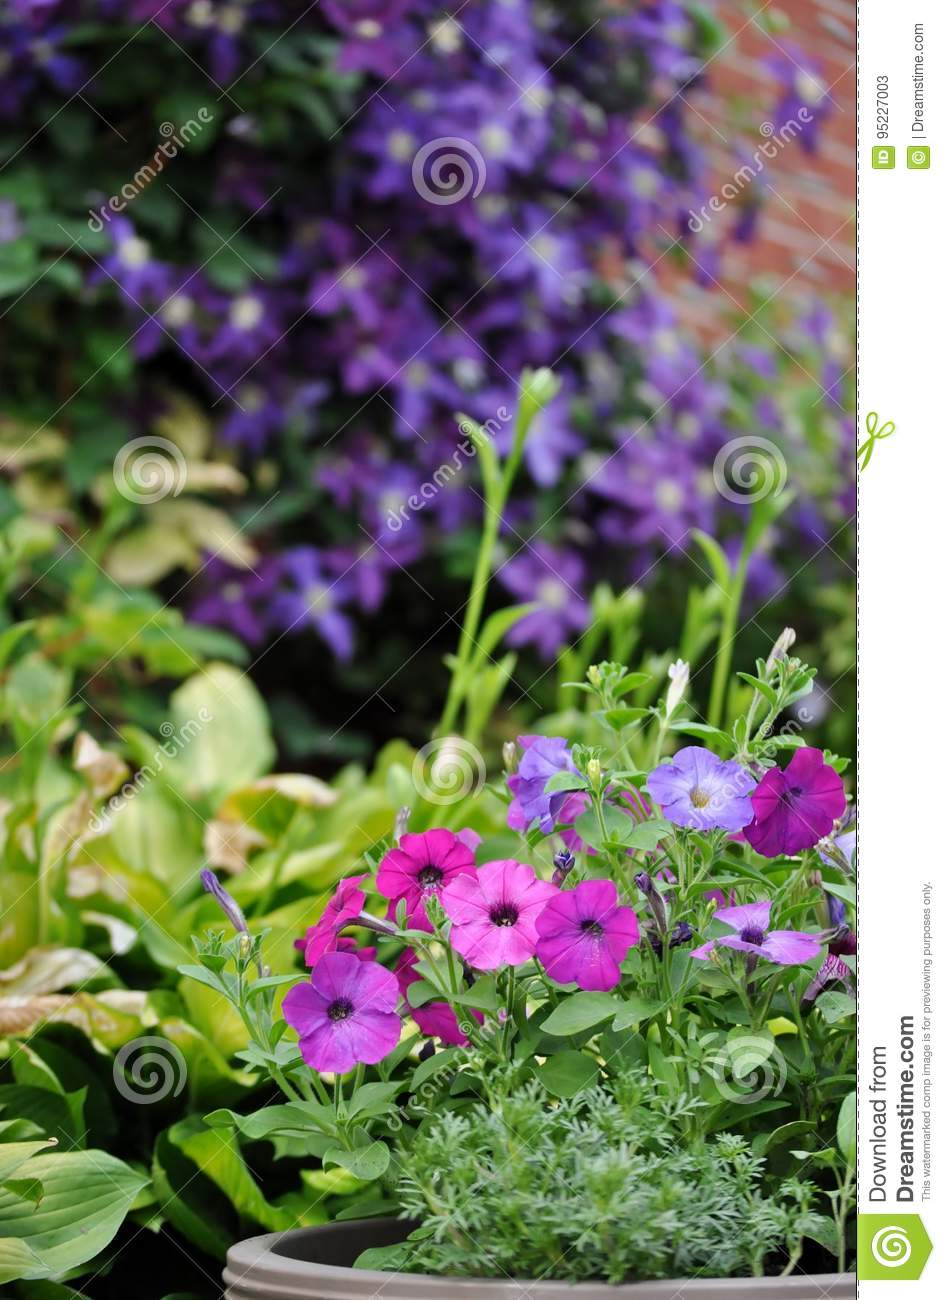 Colorful Flowers In The Garden Stock Image Image Of Dark Floral